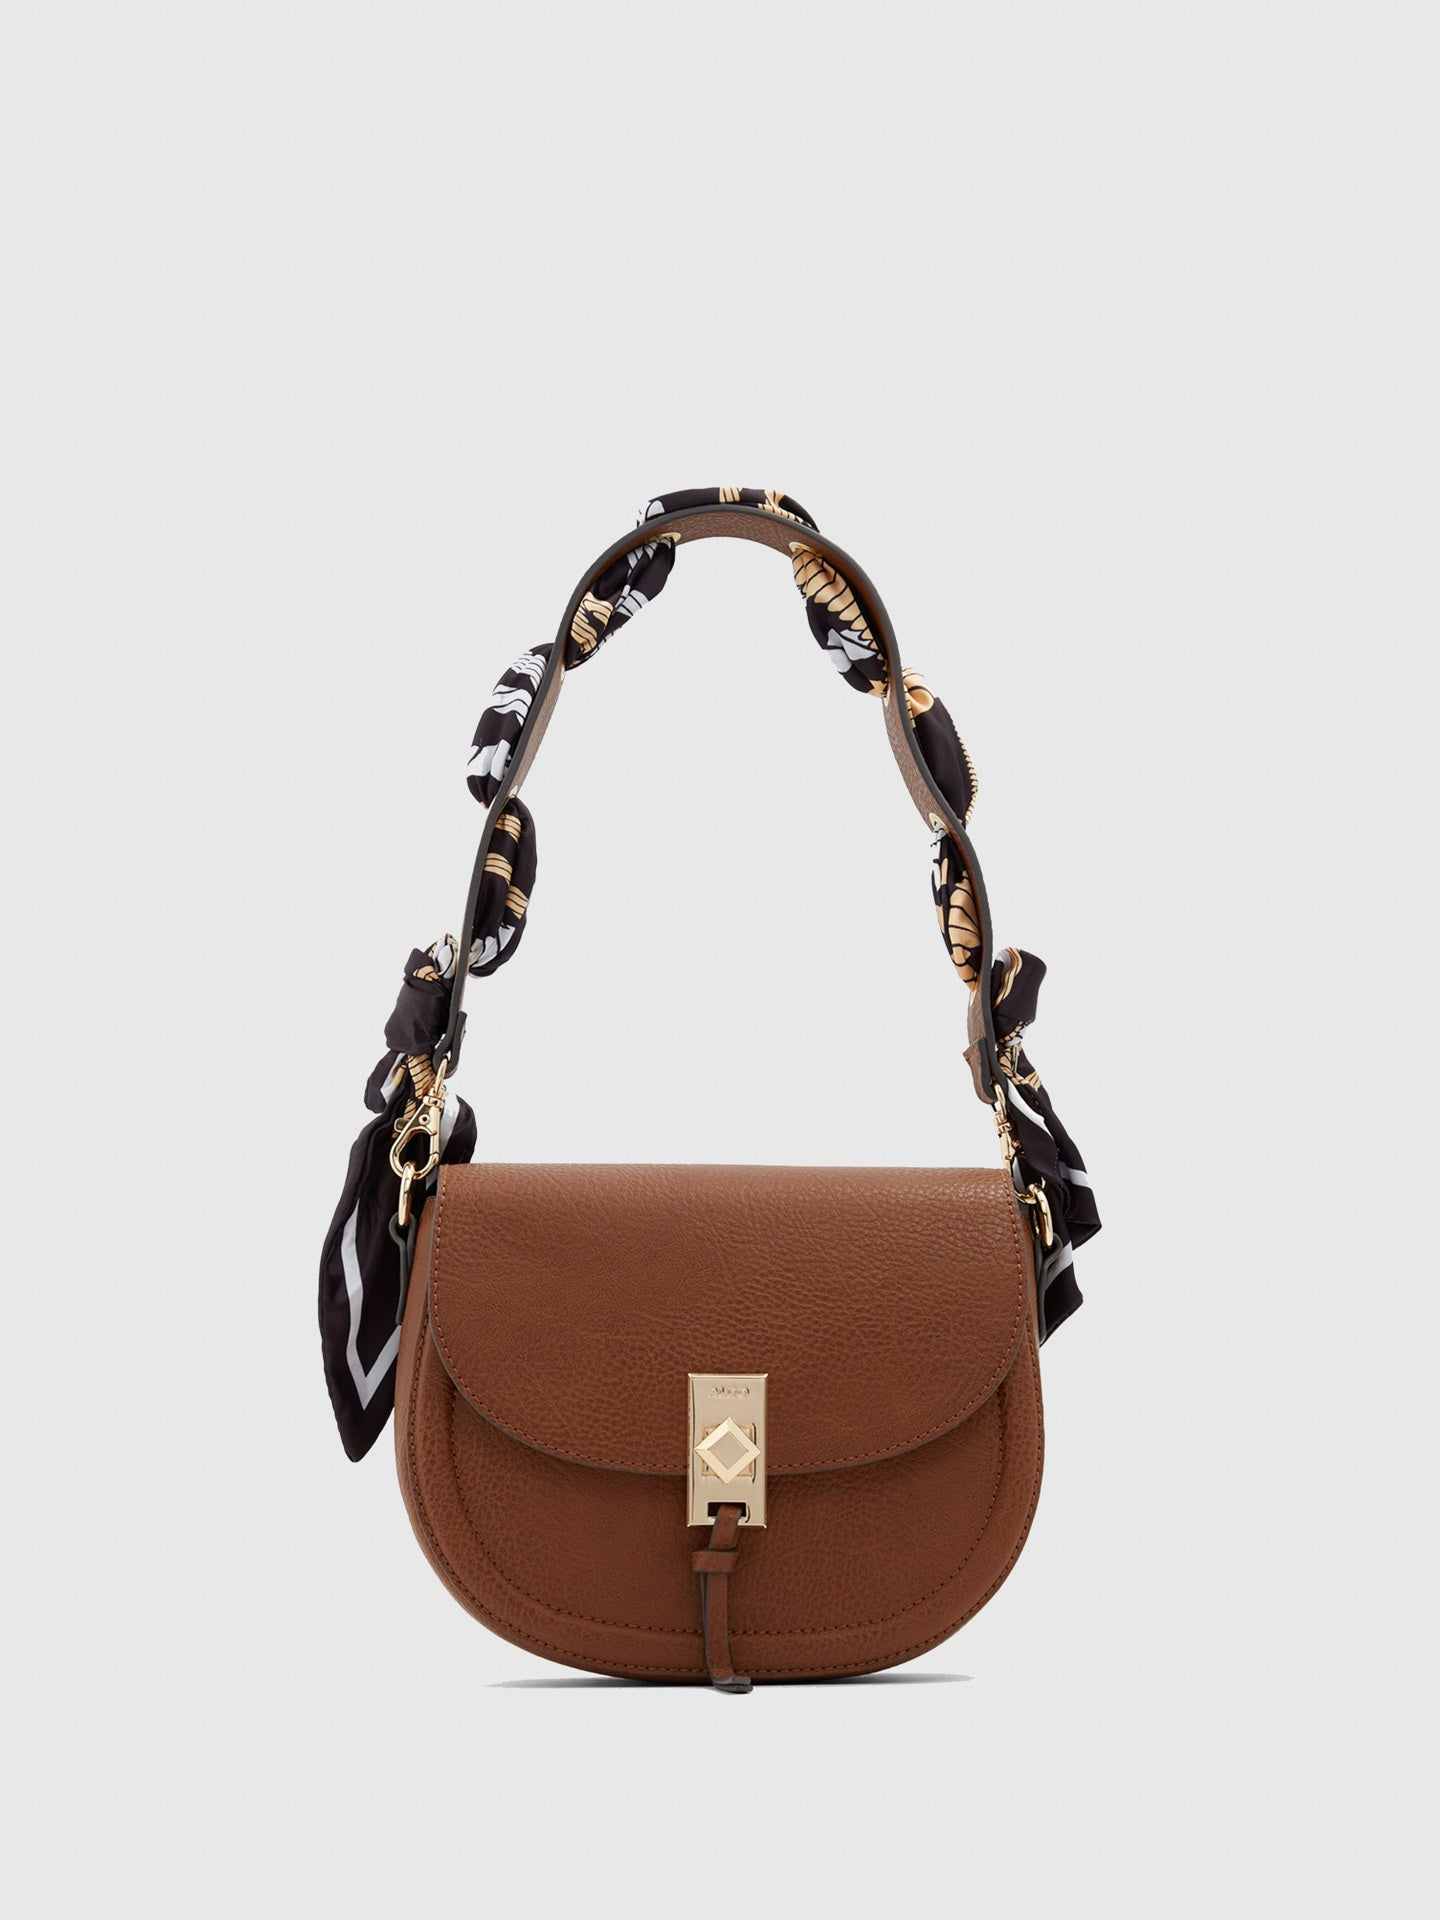 Aldo Brown Shoulder Bag